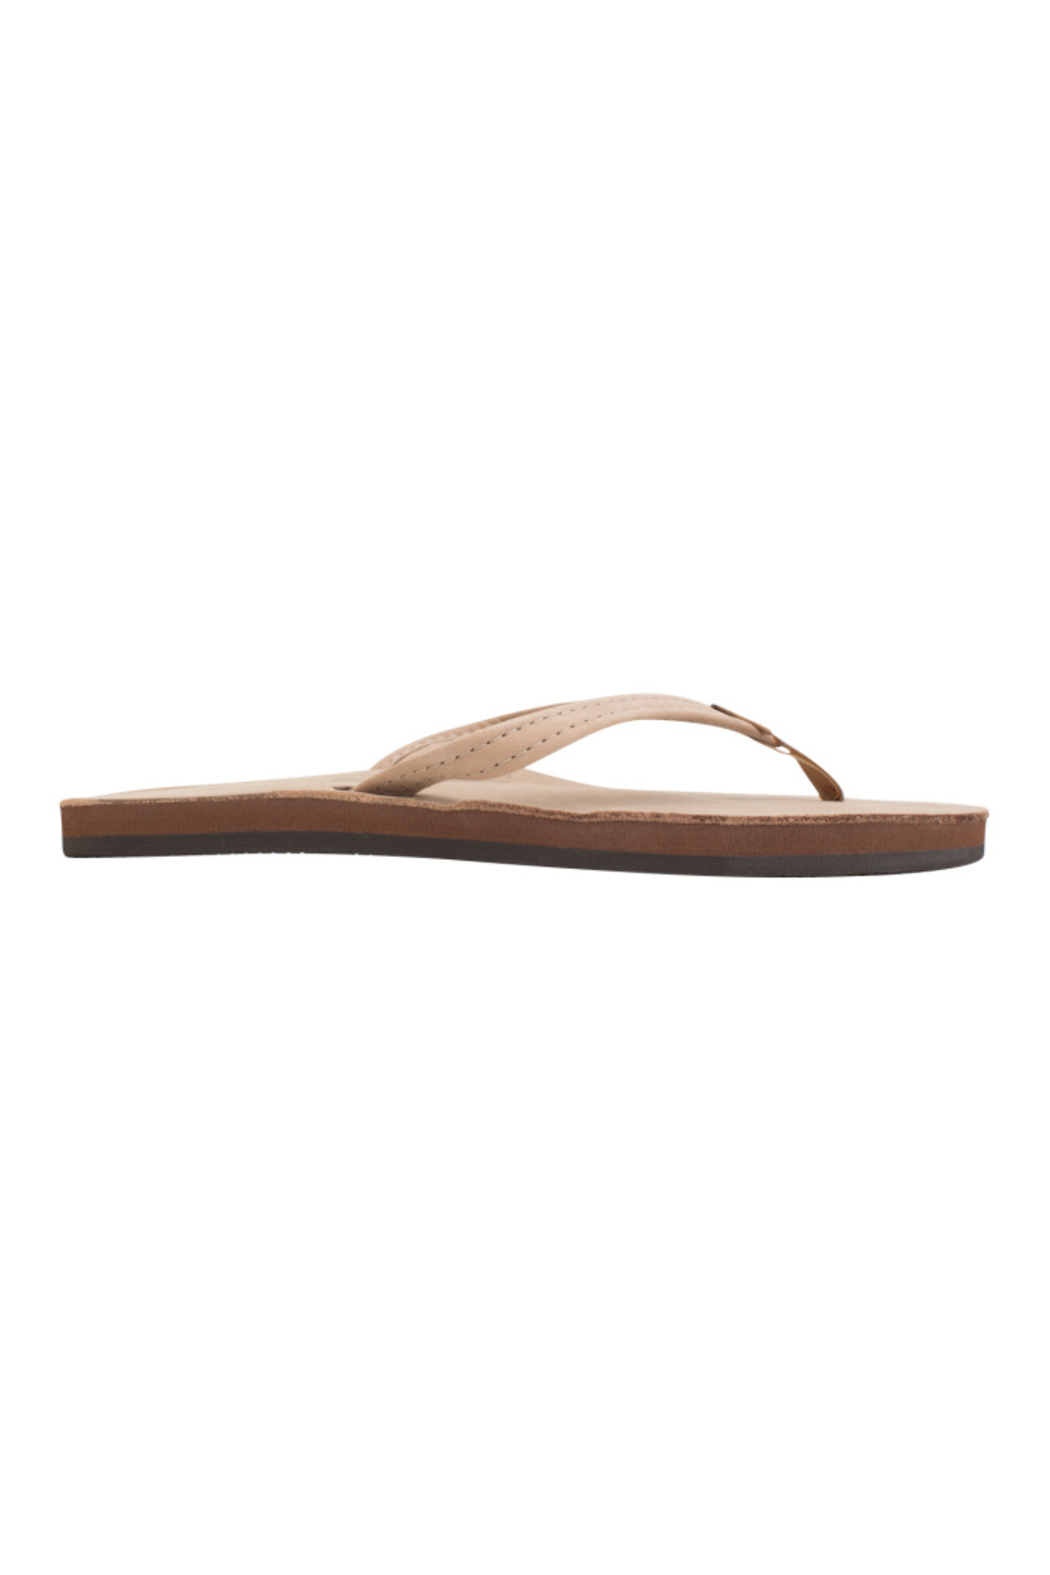 Rainbow Women's Single Layer Premier Leather with Arch Support - Main Image